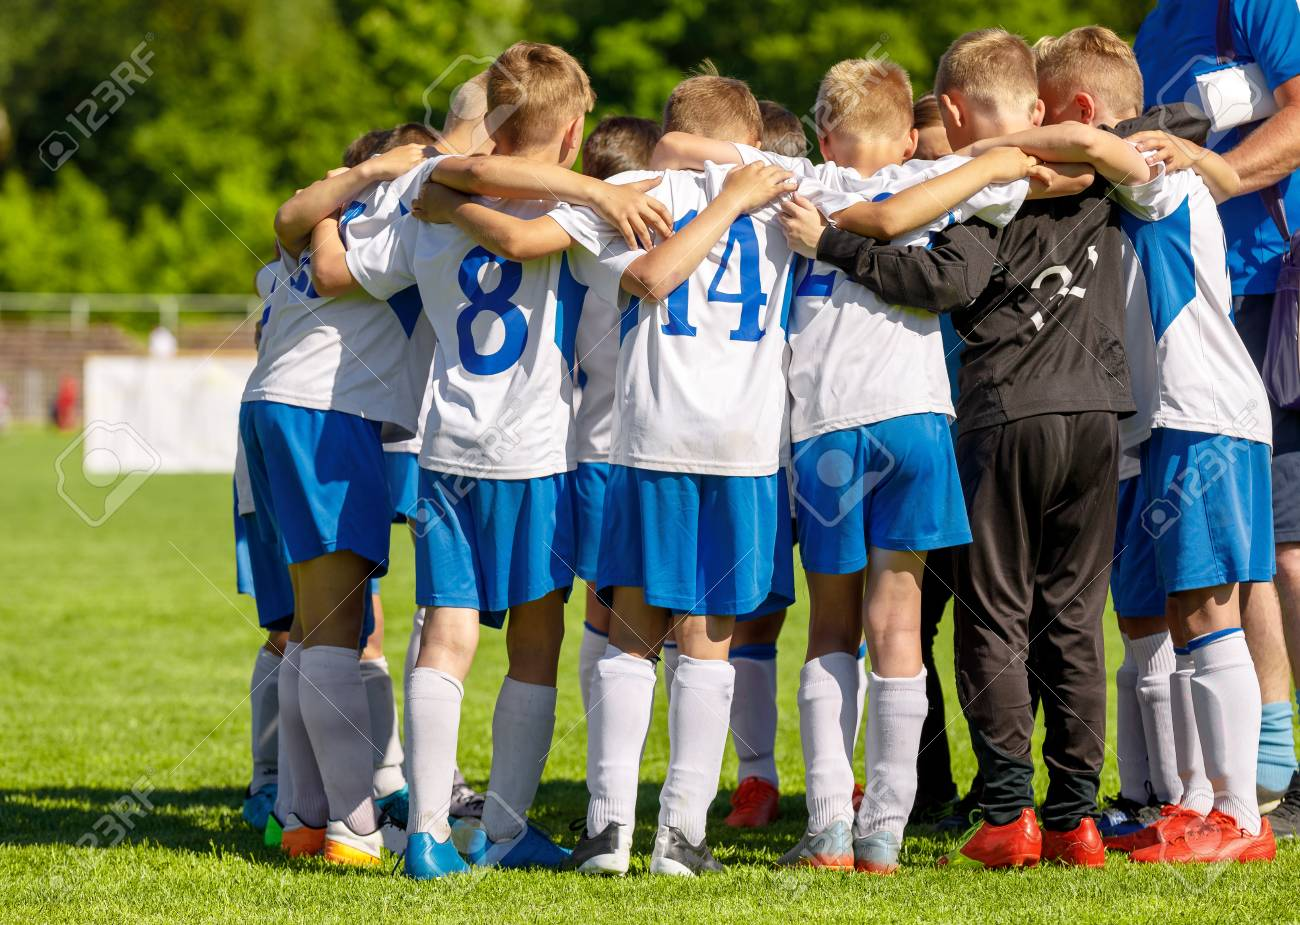 Football Youth Team Huddling with Coach. Young Happy Boys Soccer Players Gathering Before the Final Match - 125674436